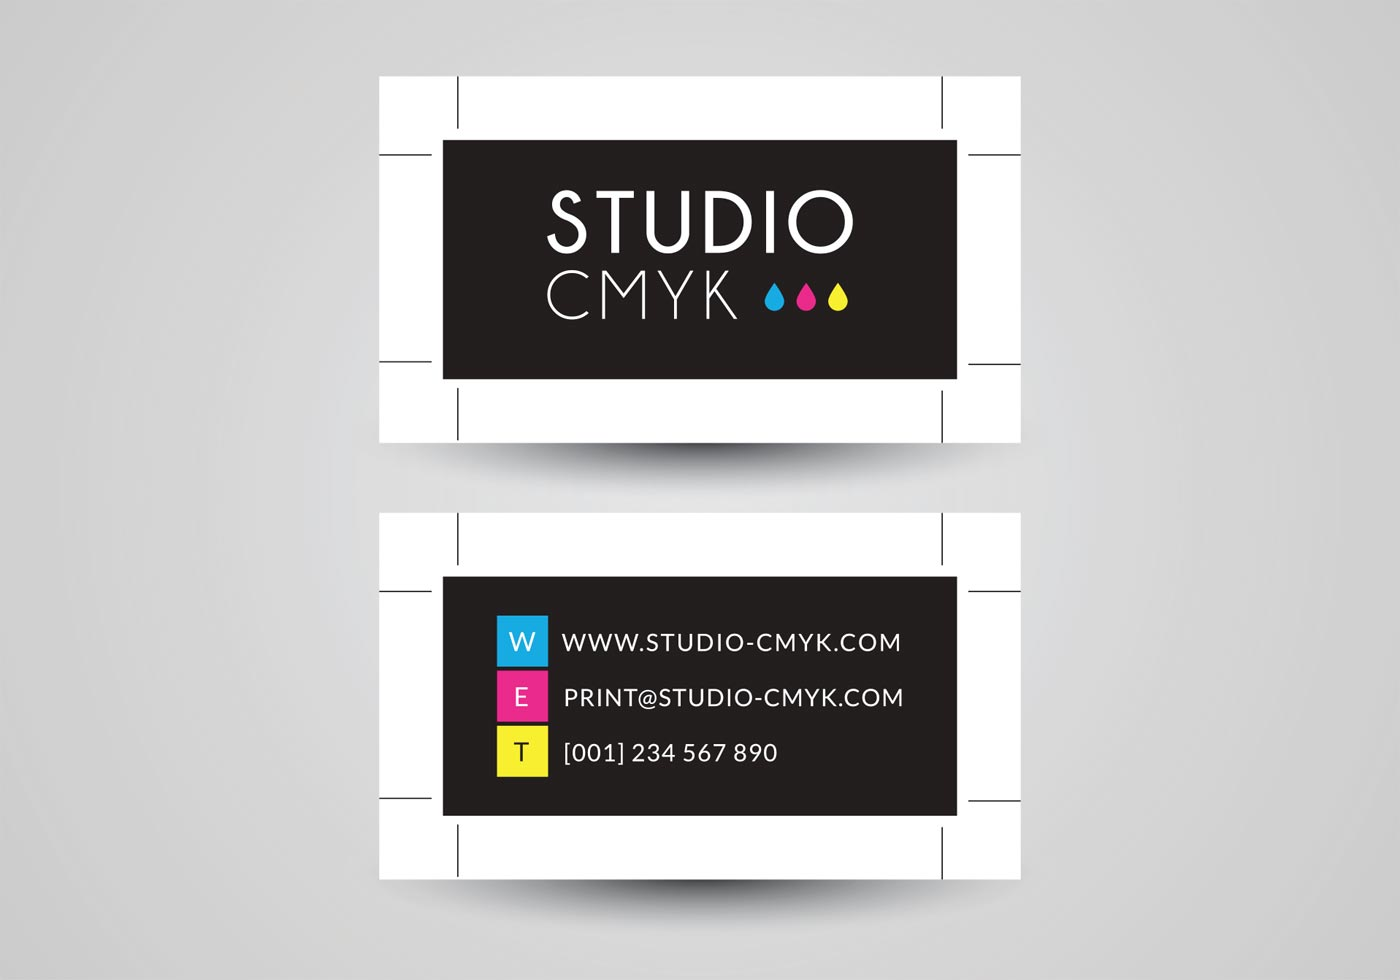 Free business card vector design for printery download free vector free business card vector design for printery download free vector art stock graphics images reheart Choice Image